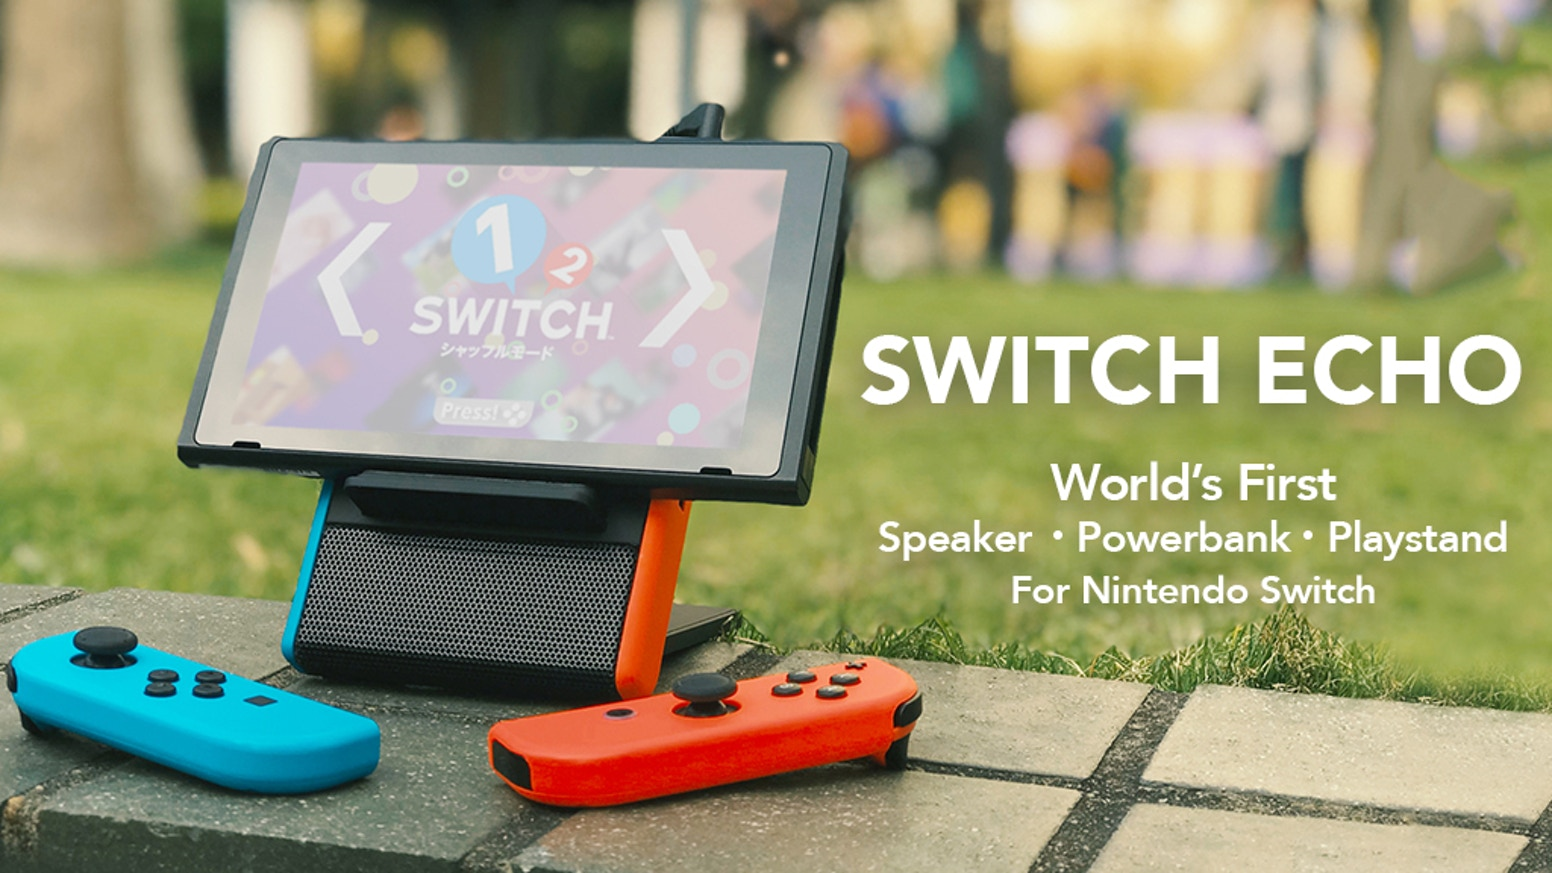 A powerful speaker with battery charging stand enhances the gaming sound, prolongs gaming playtime and provides the best viewing angle.